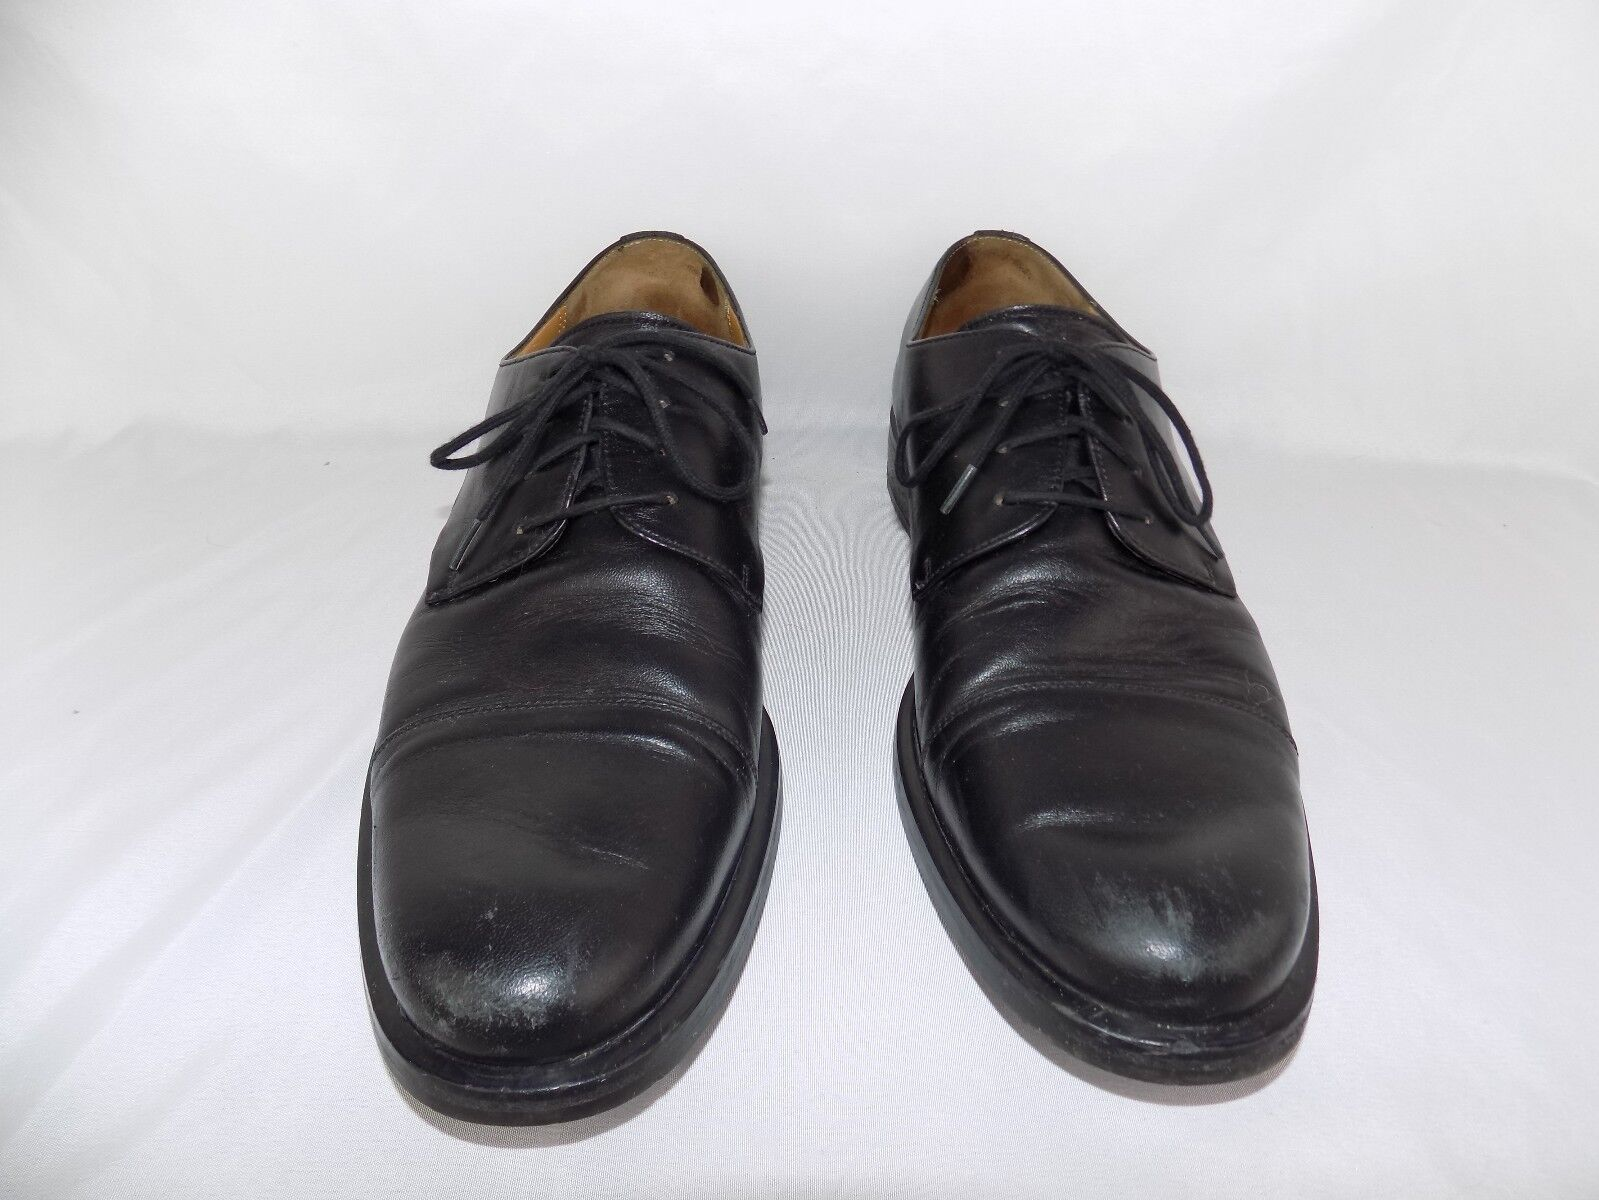 Bally Men's nero Leather Loafers Loafers Loafers Dimensione 8.5 D Selco 828cb8